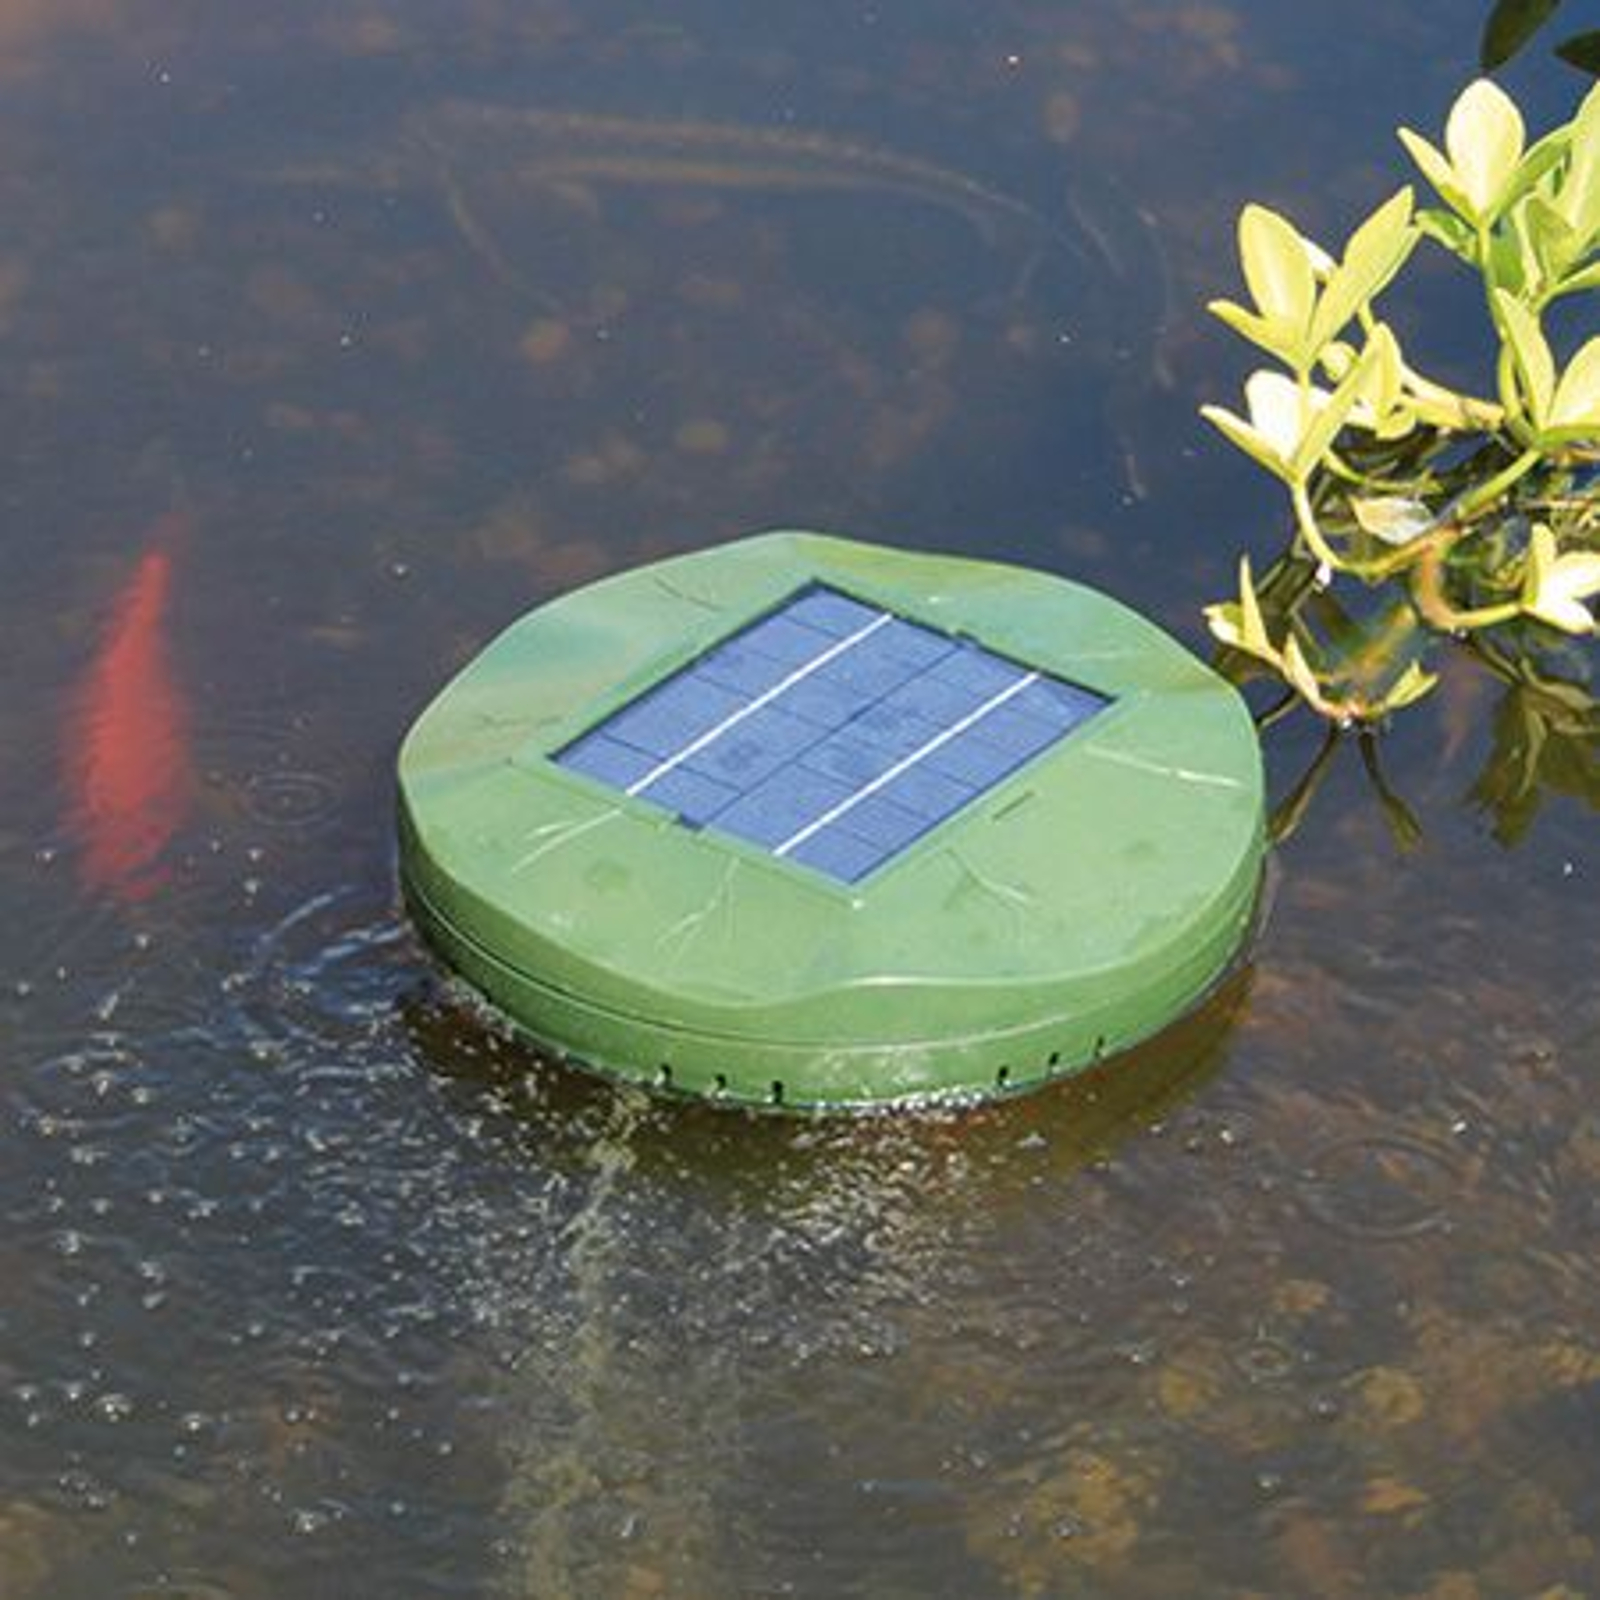 Solar-powered Pond ventilator Floating Air_3012528_1